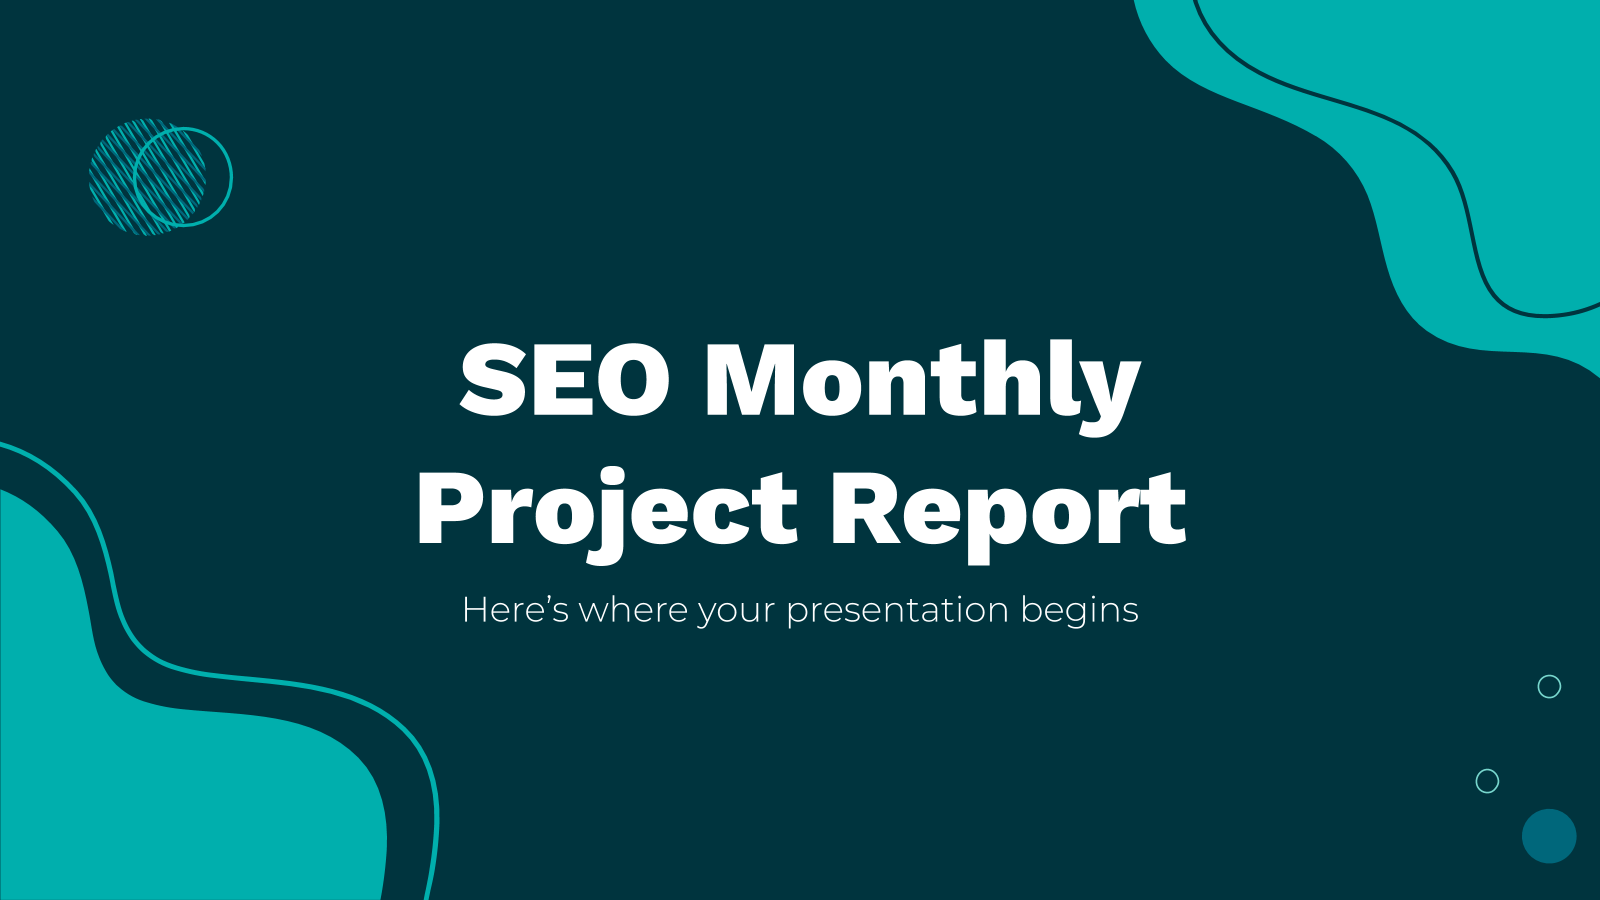 SEO Monthly Project Report presentation template